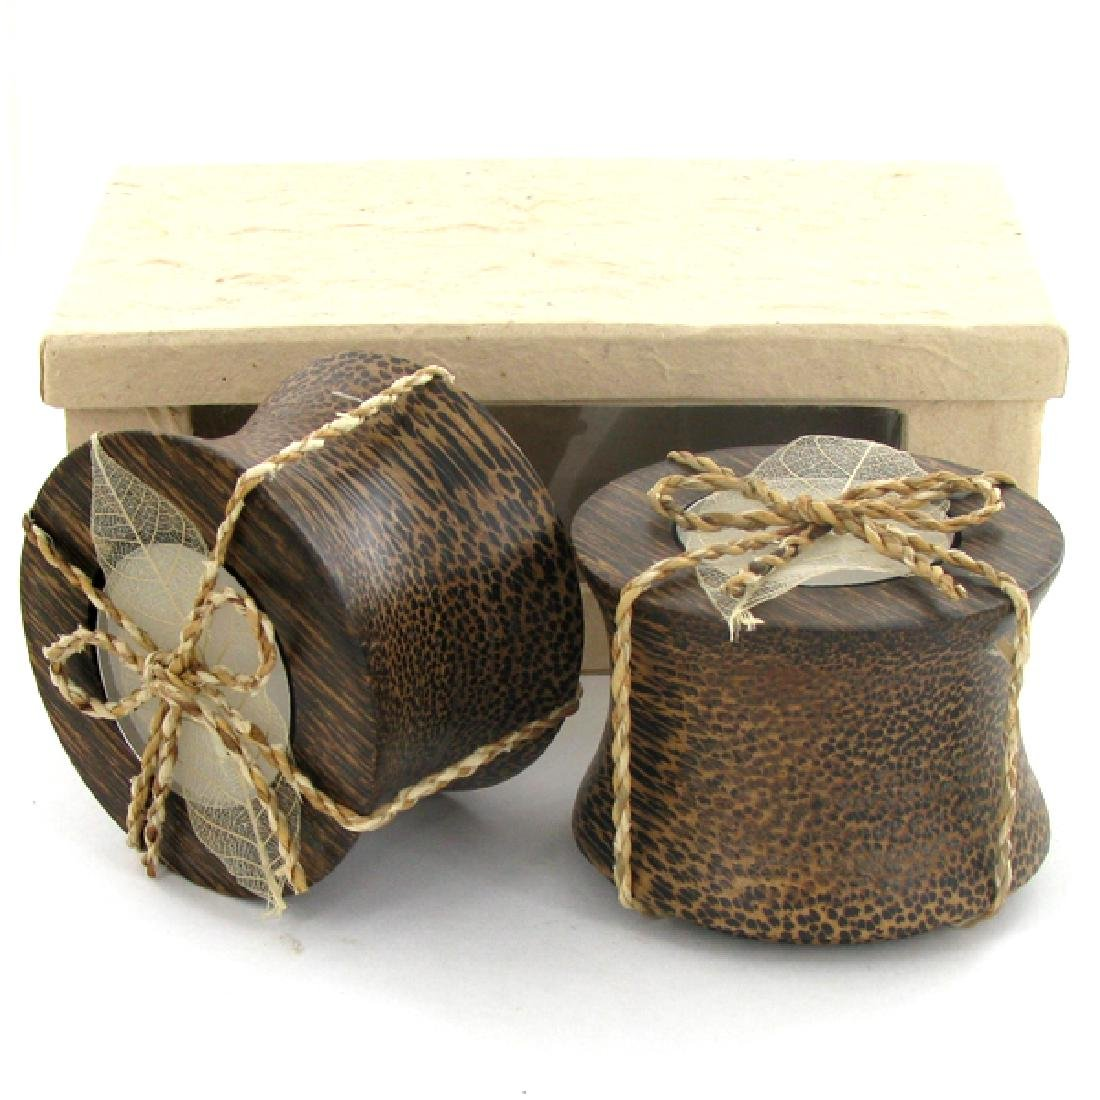 Sugarpalm Wood Candle Holder